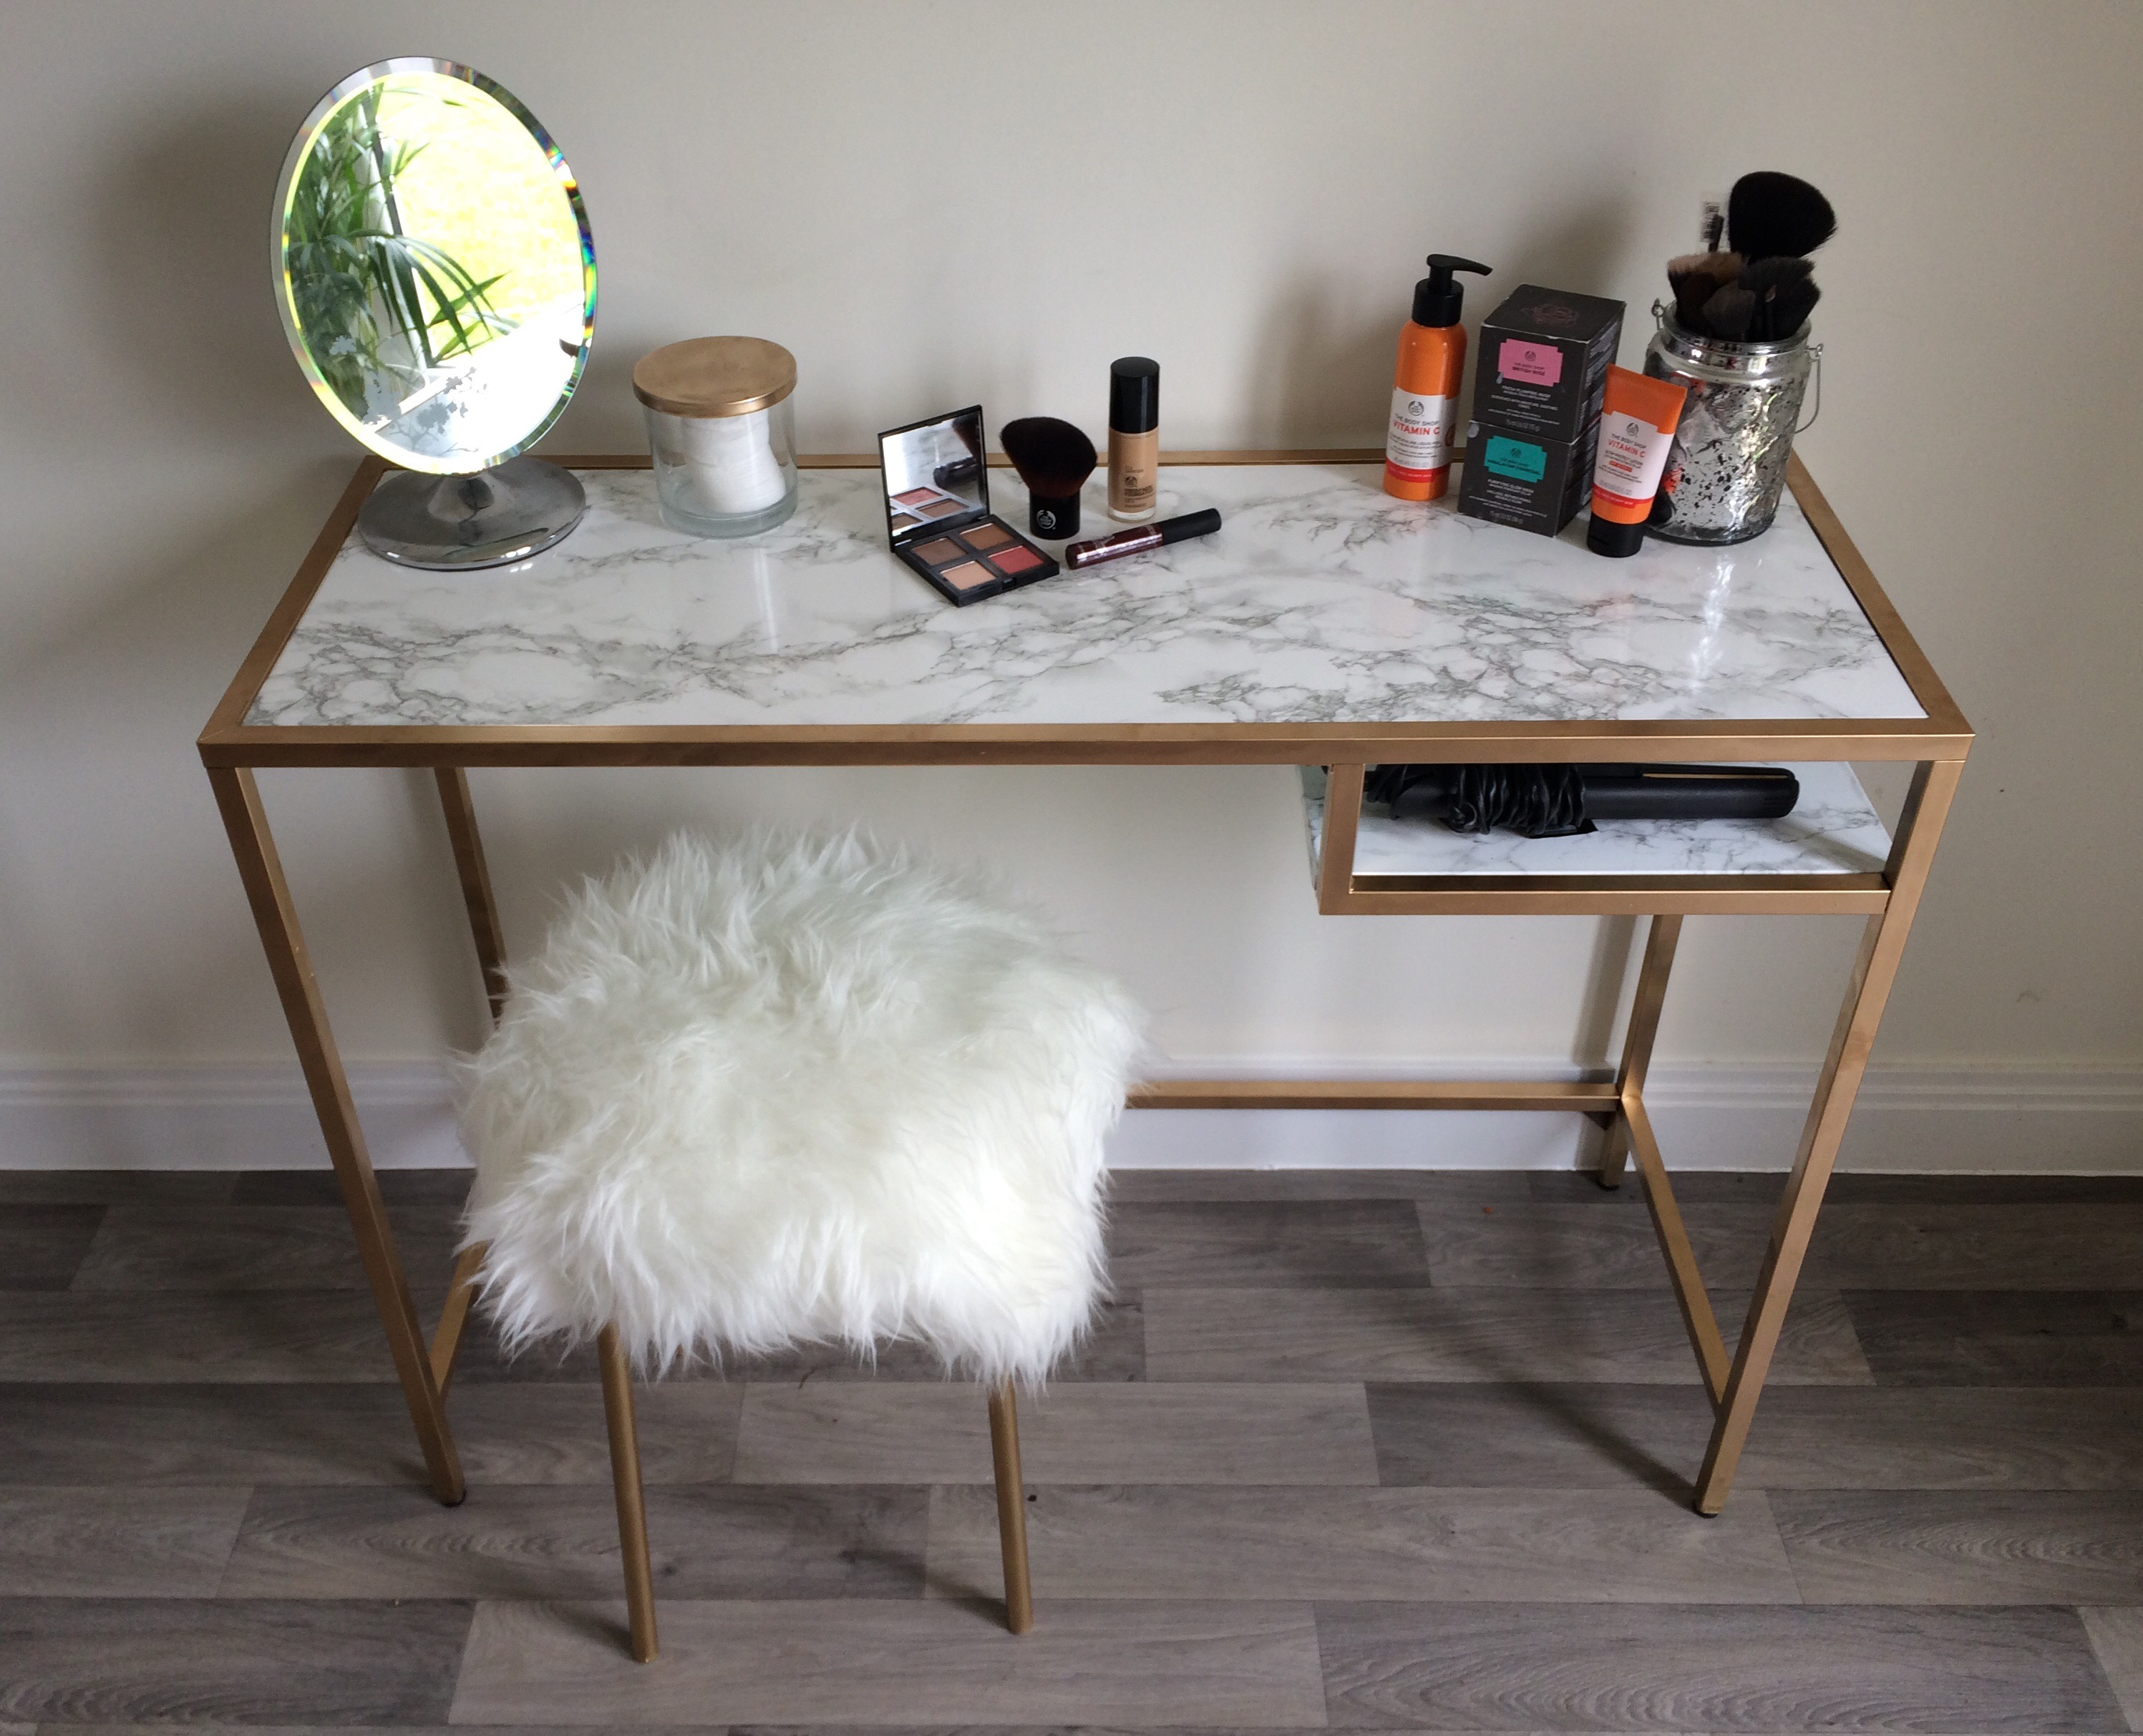 IKEA HACK : BESPOKE MAKE-UP TABLE & STOOL FOR UNDER £60